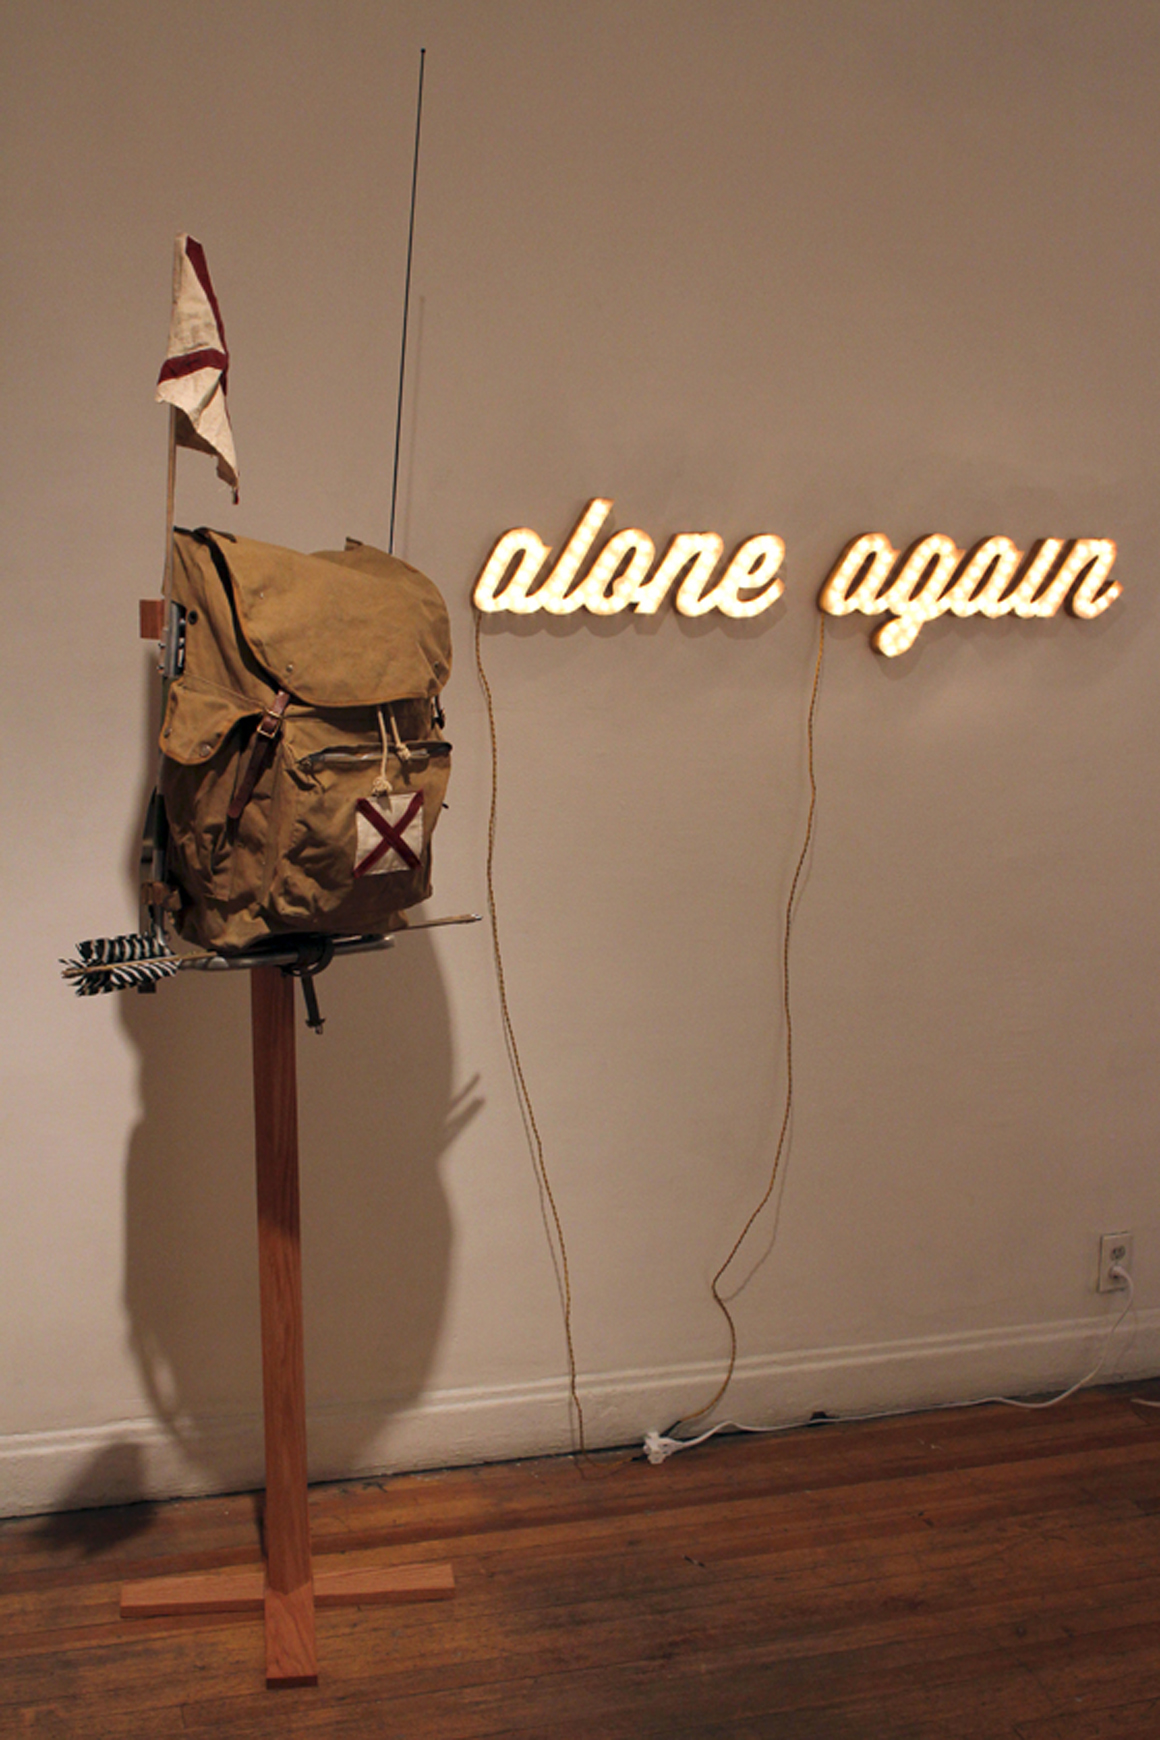 "<p><span class=""name"">Ryan Everson</span><br><em>Alone Again (Pack)</em><span class='media'>vintage scout pack, handmade bamboo arrows, radio, canvas patches and flag, oak stand</span>78 x 31 1/2 x 16in<br>2013<br><a class='inquire' href='mailto:info@gildargallery.com?subject=Artwork Inquiry REVE0006&body=I am interested in finding out more about Alone Again (Pack) by Ryan Everson'>Inquire</a></p>"